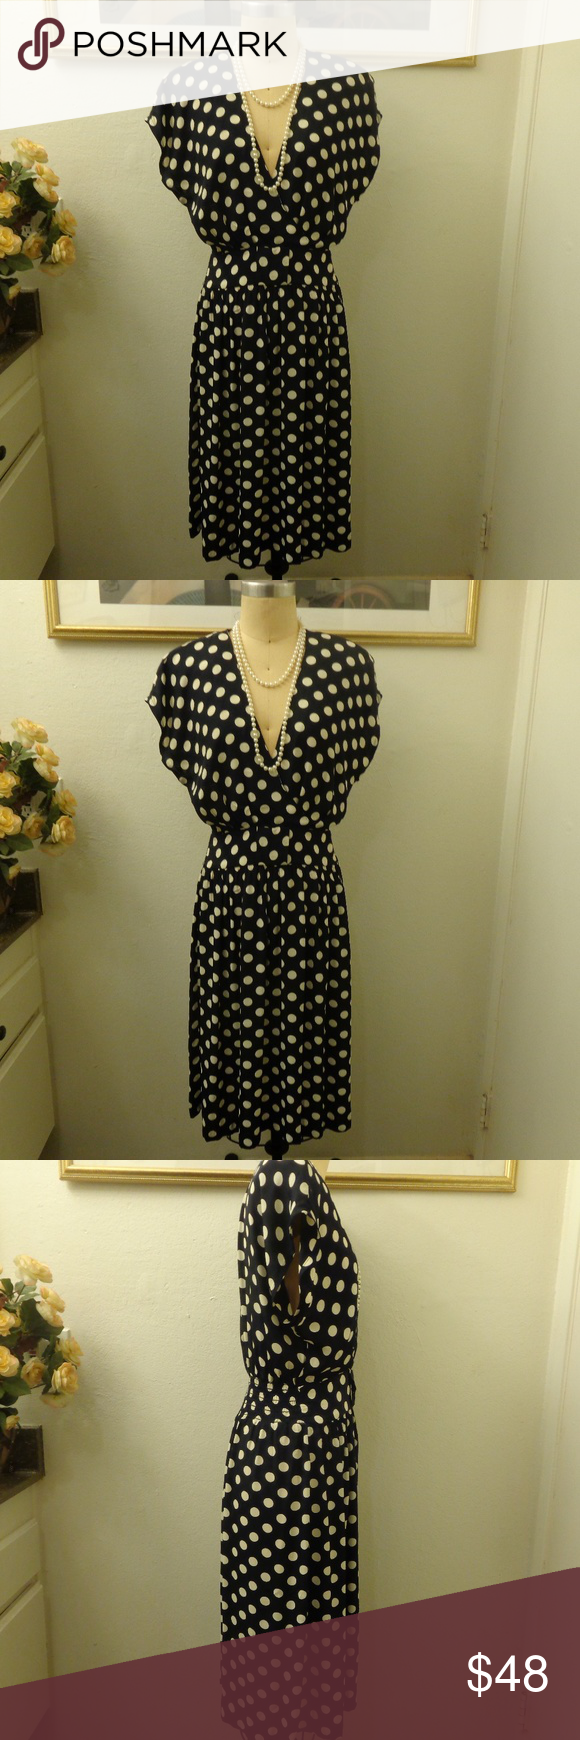 a3b77dd9e01b A.B.S Collection Vintage Polka Dot Midi Dress A.B.S Collection Vintage Polka  Dot Midi Dress. Has removable shoulder pads. In good condition!